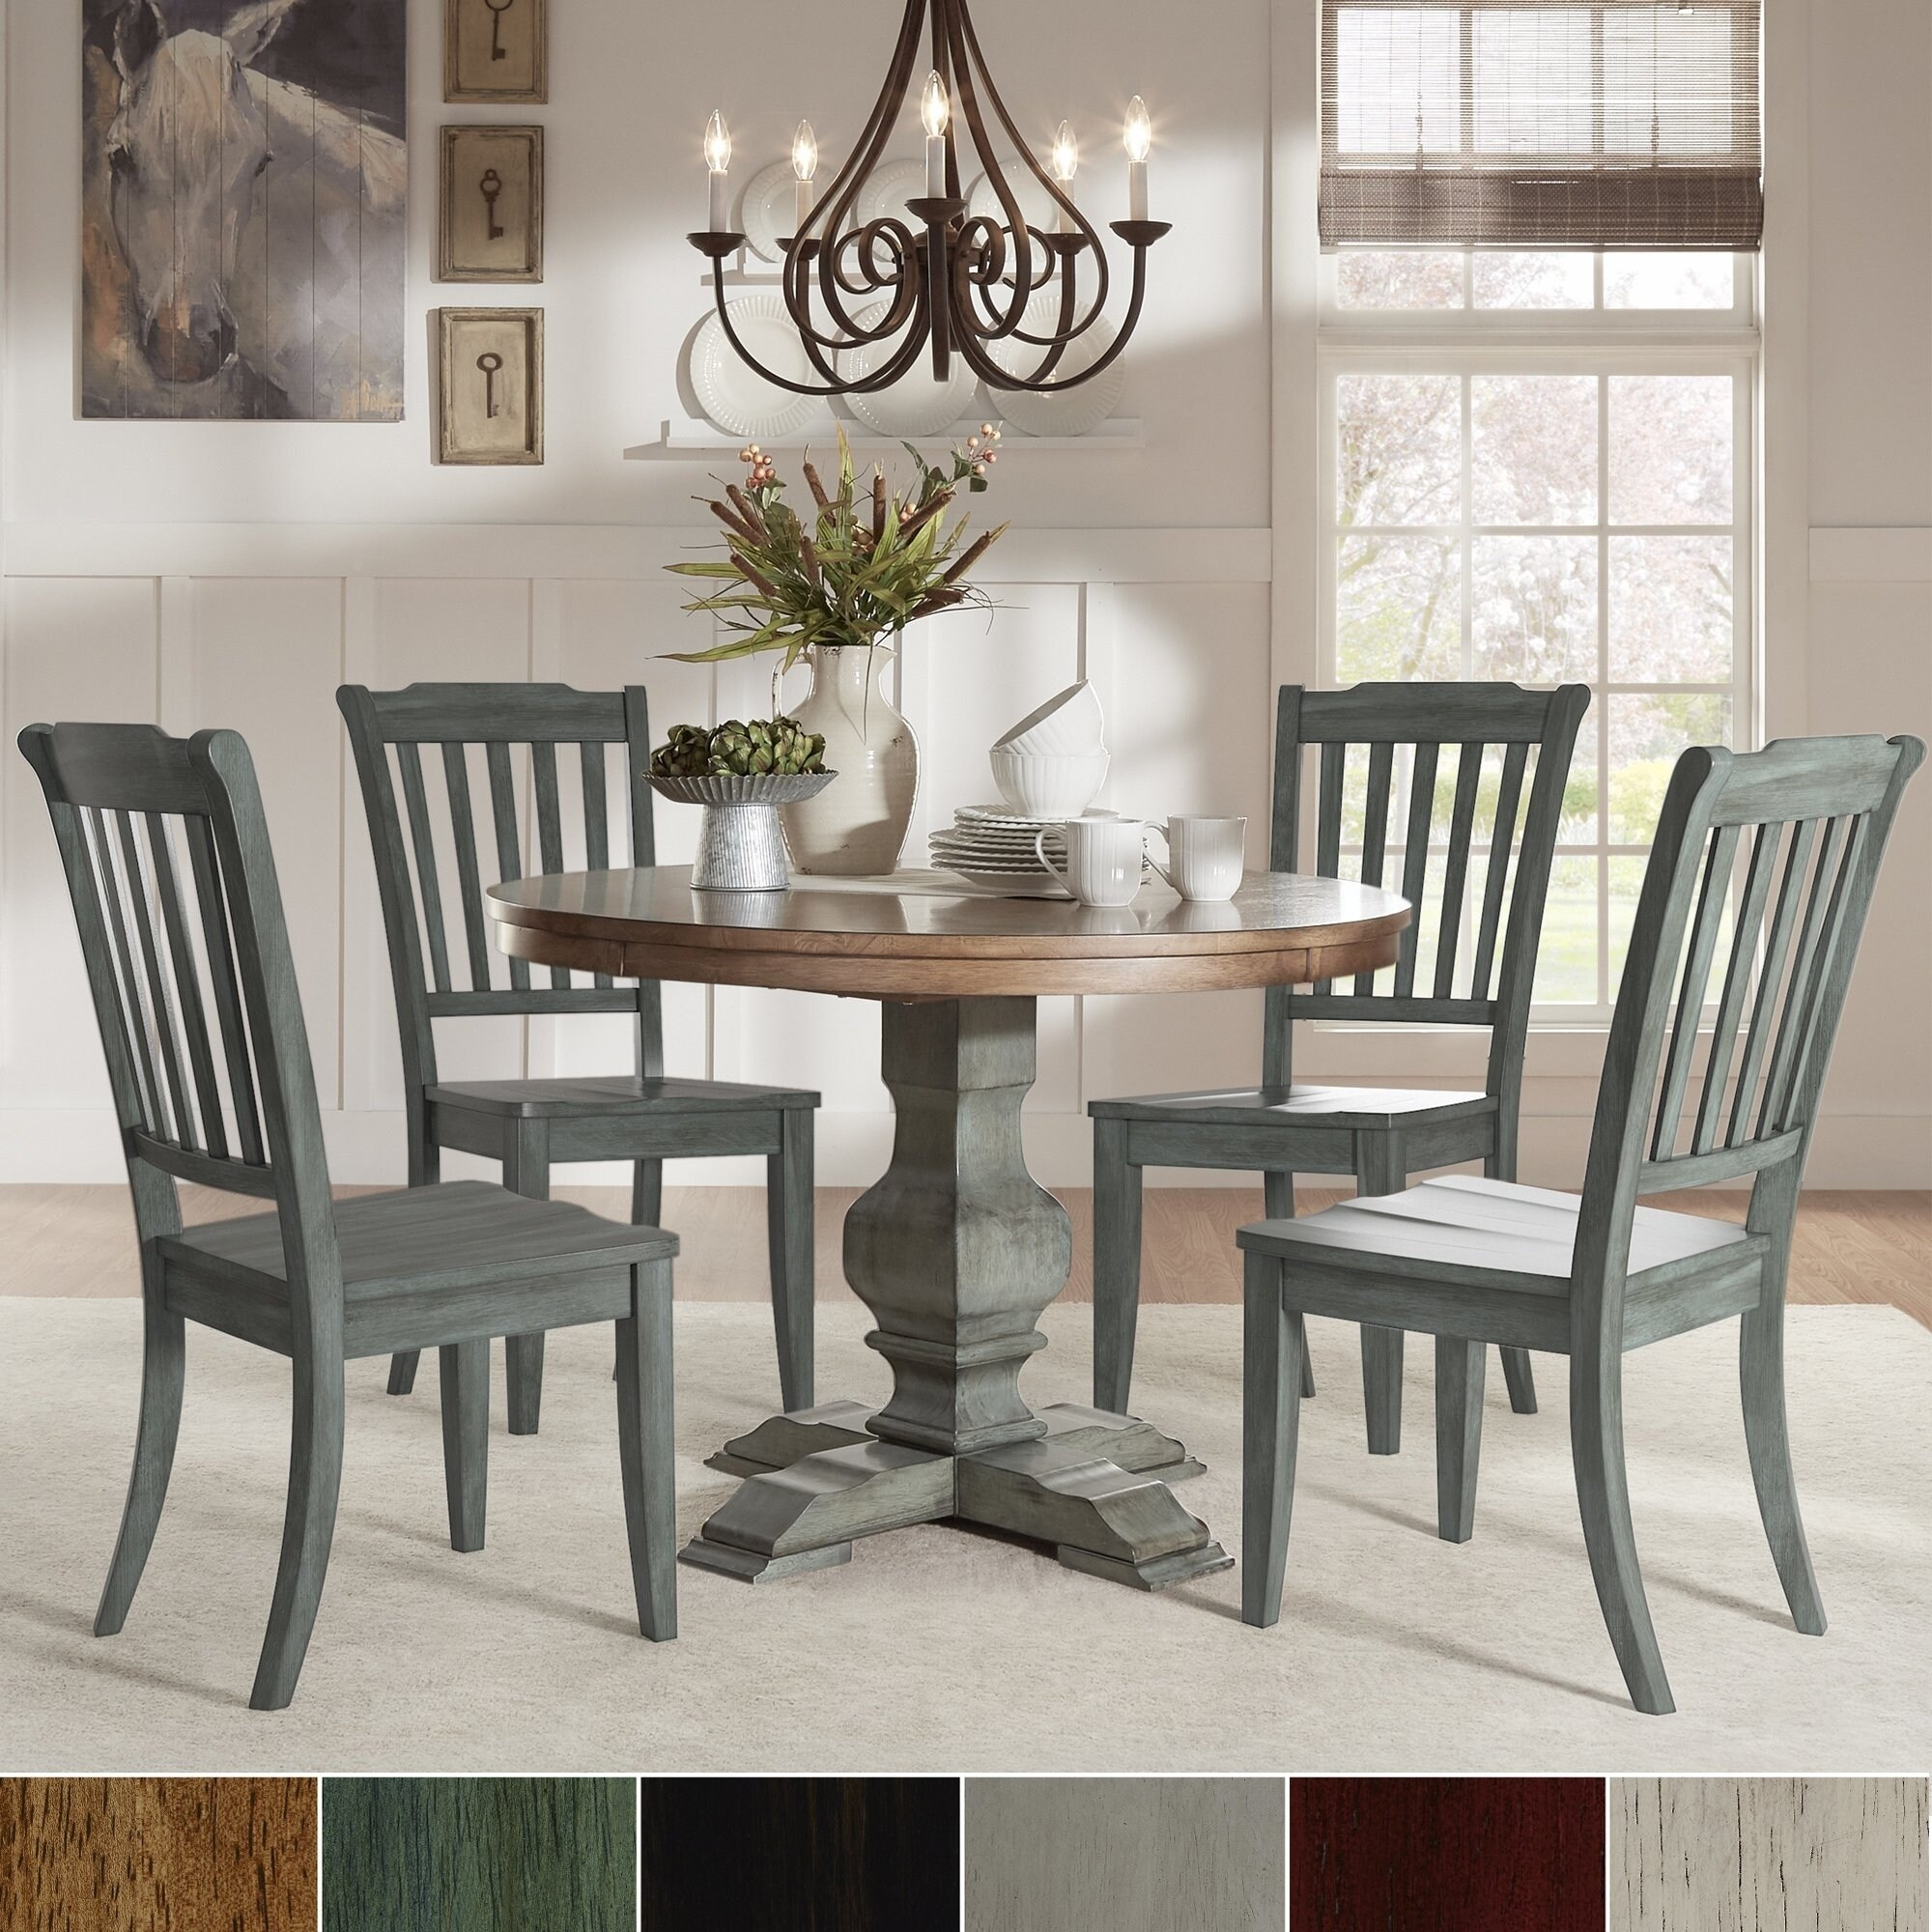 Sage Green Dining Room: Eleanor Sage Green Round Soild Wood Top 5-Piece Dining Set